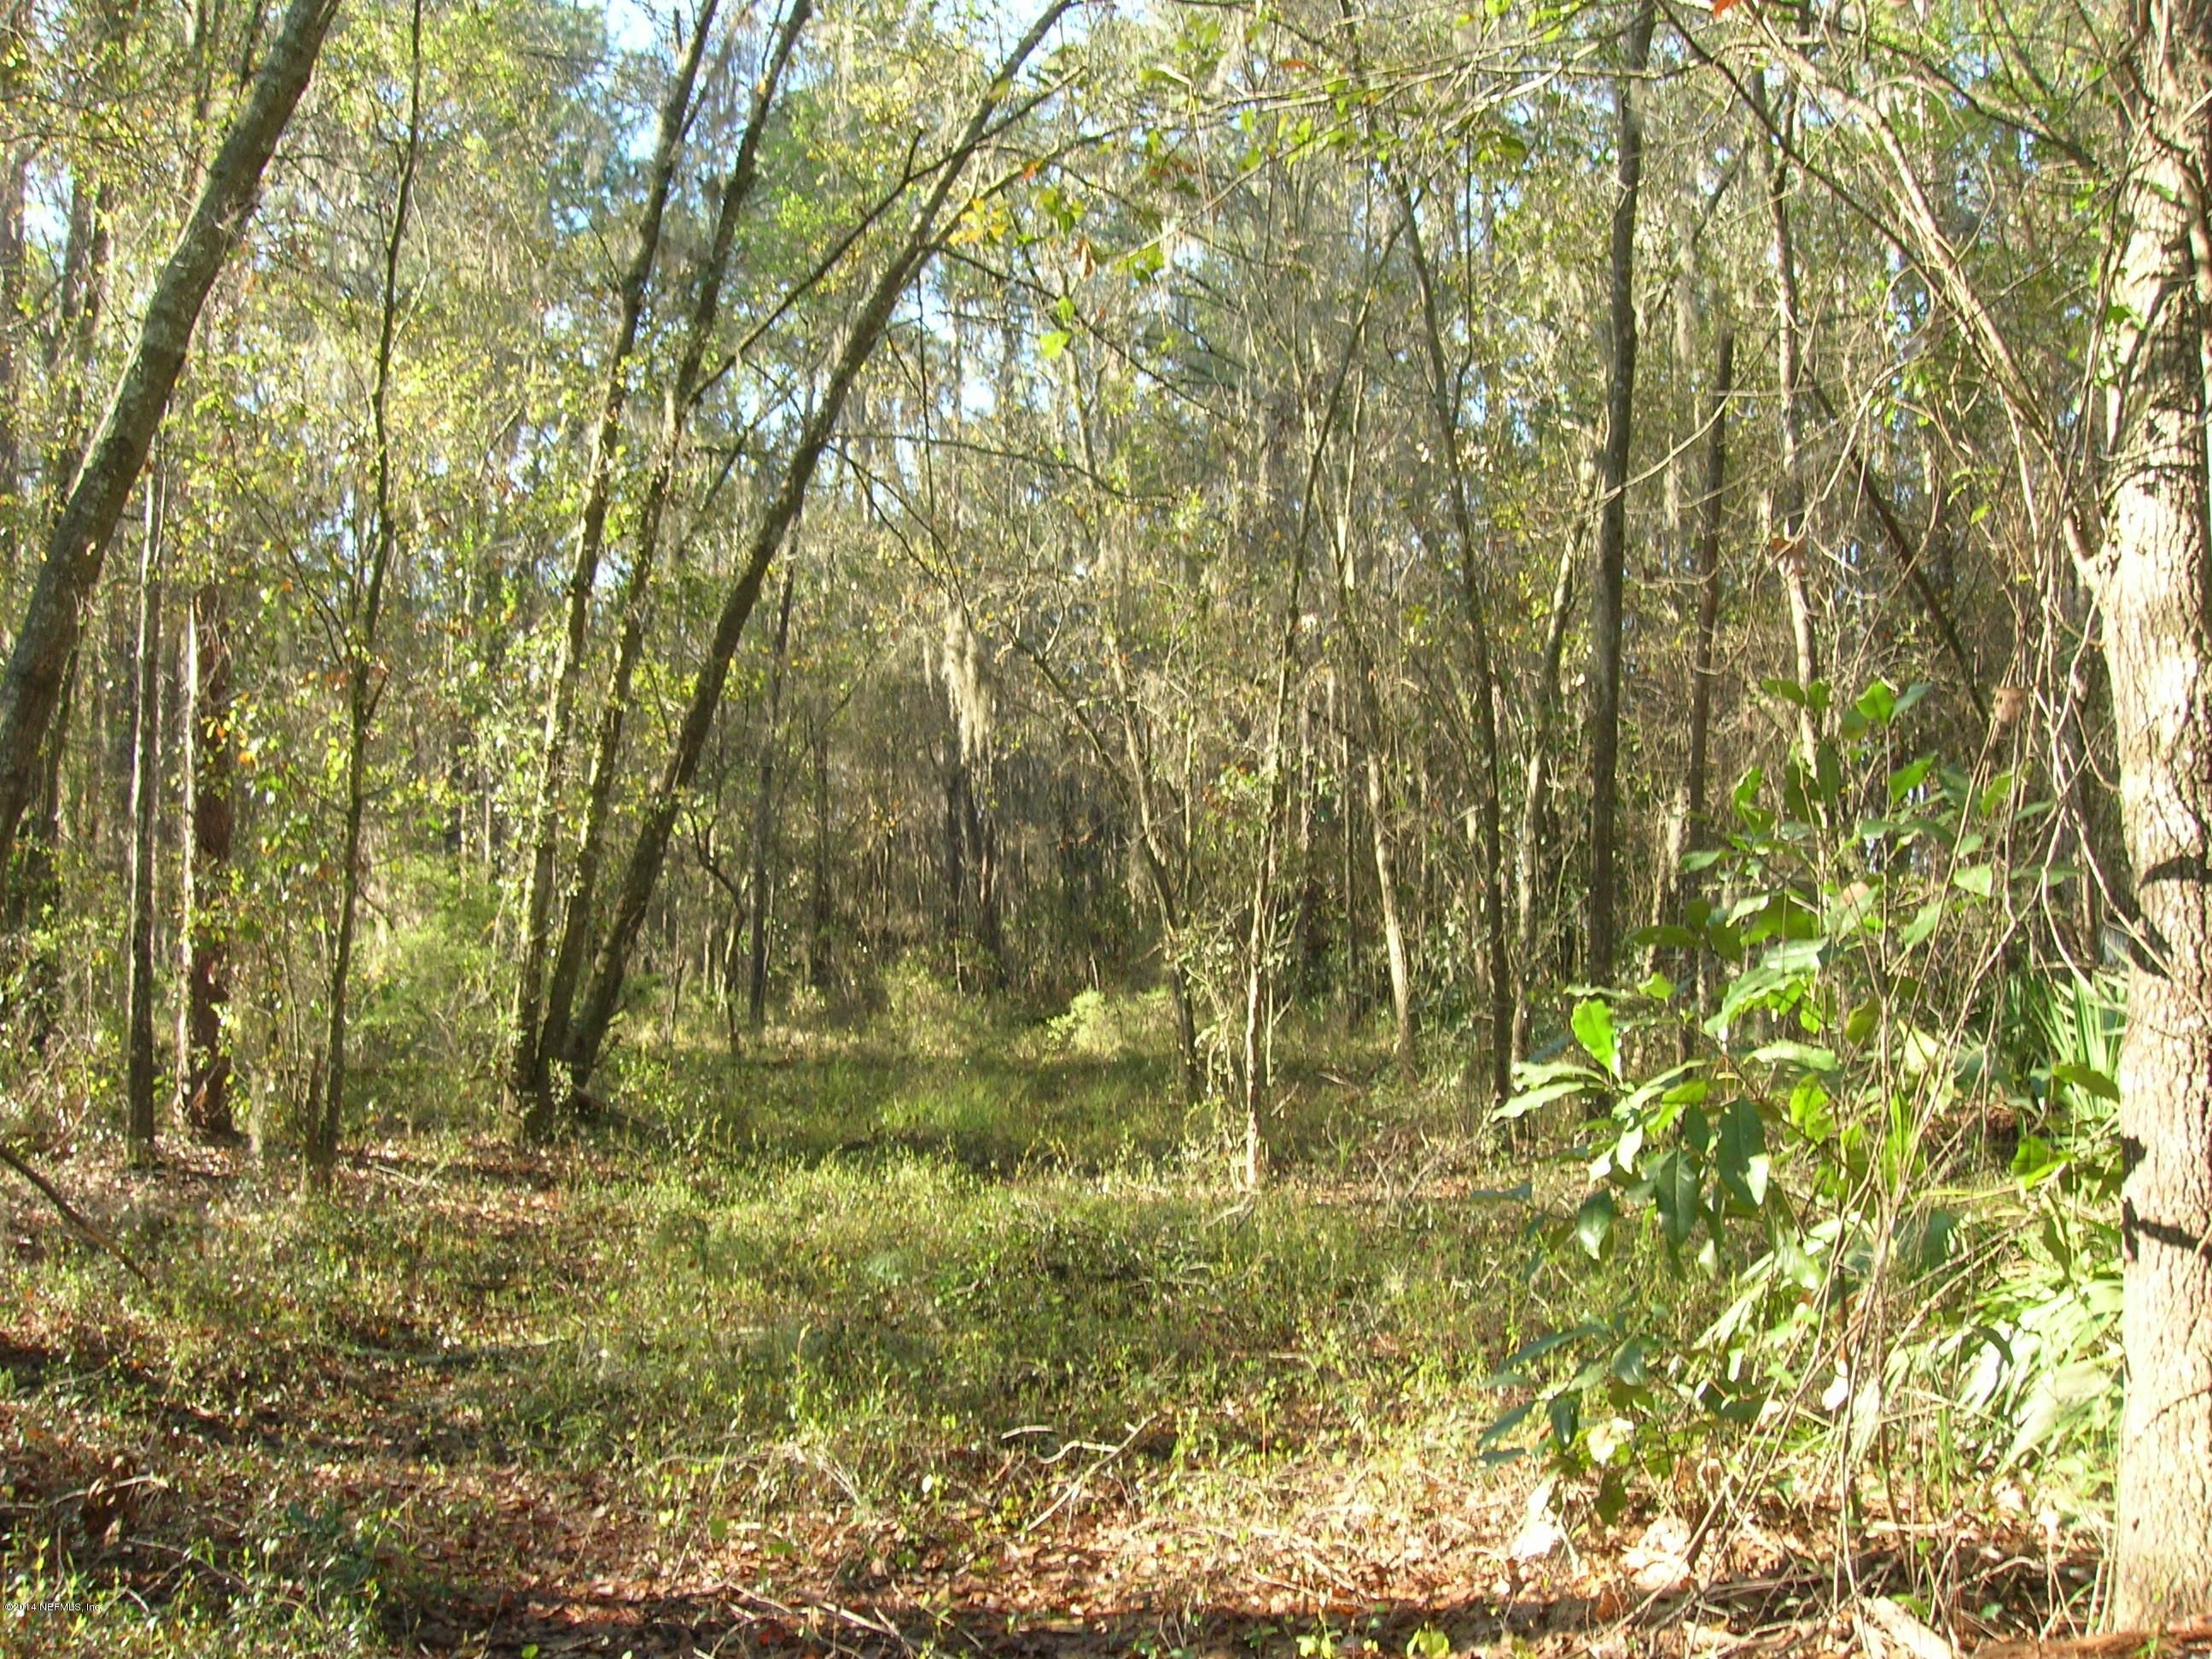 21619 115TH, EARLTON, FLORIDA 32631, ,Vacant land,For sale,115TH,985275